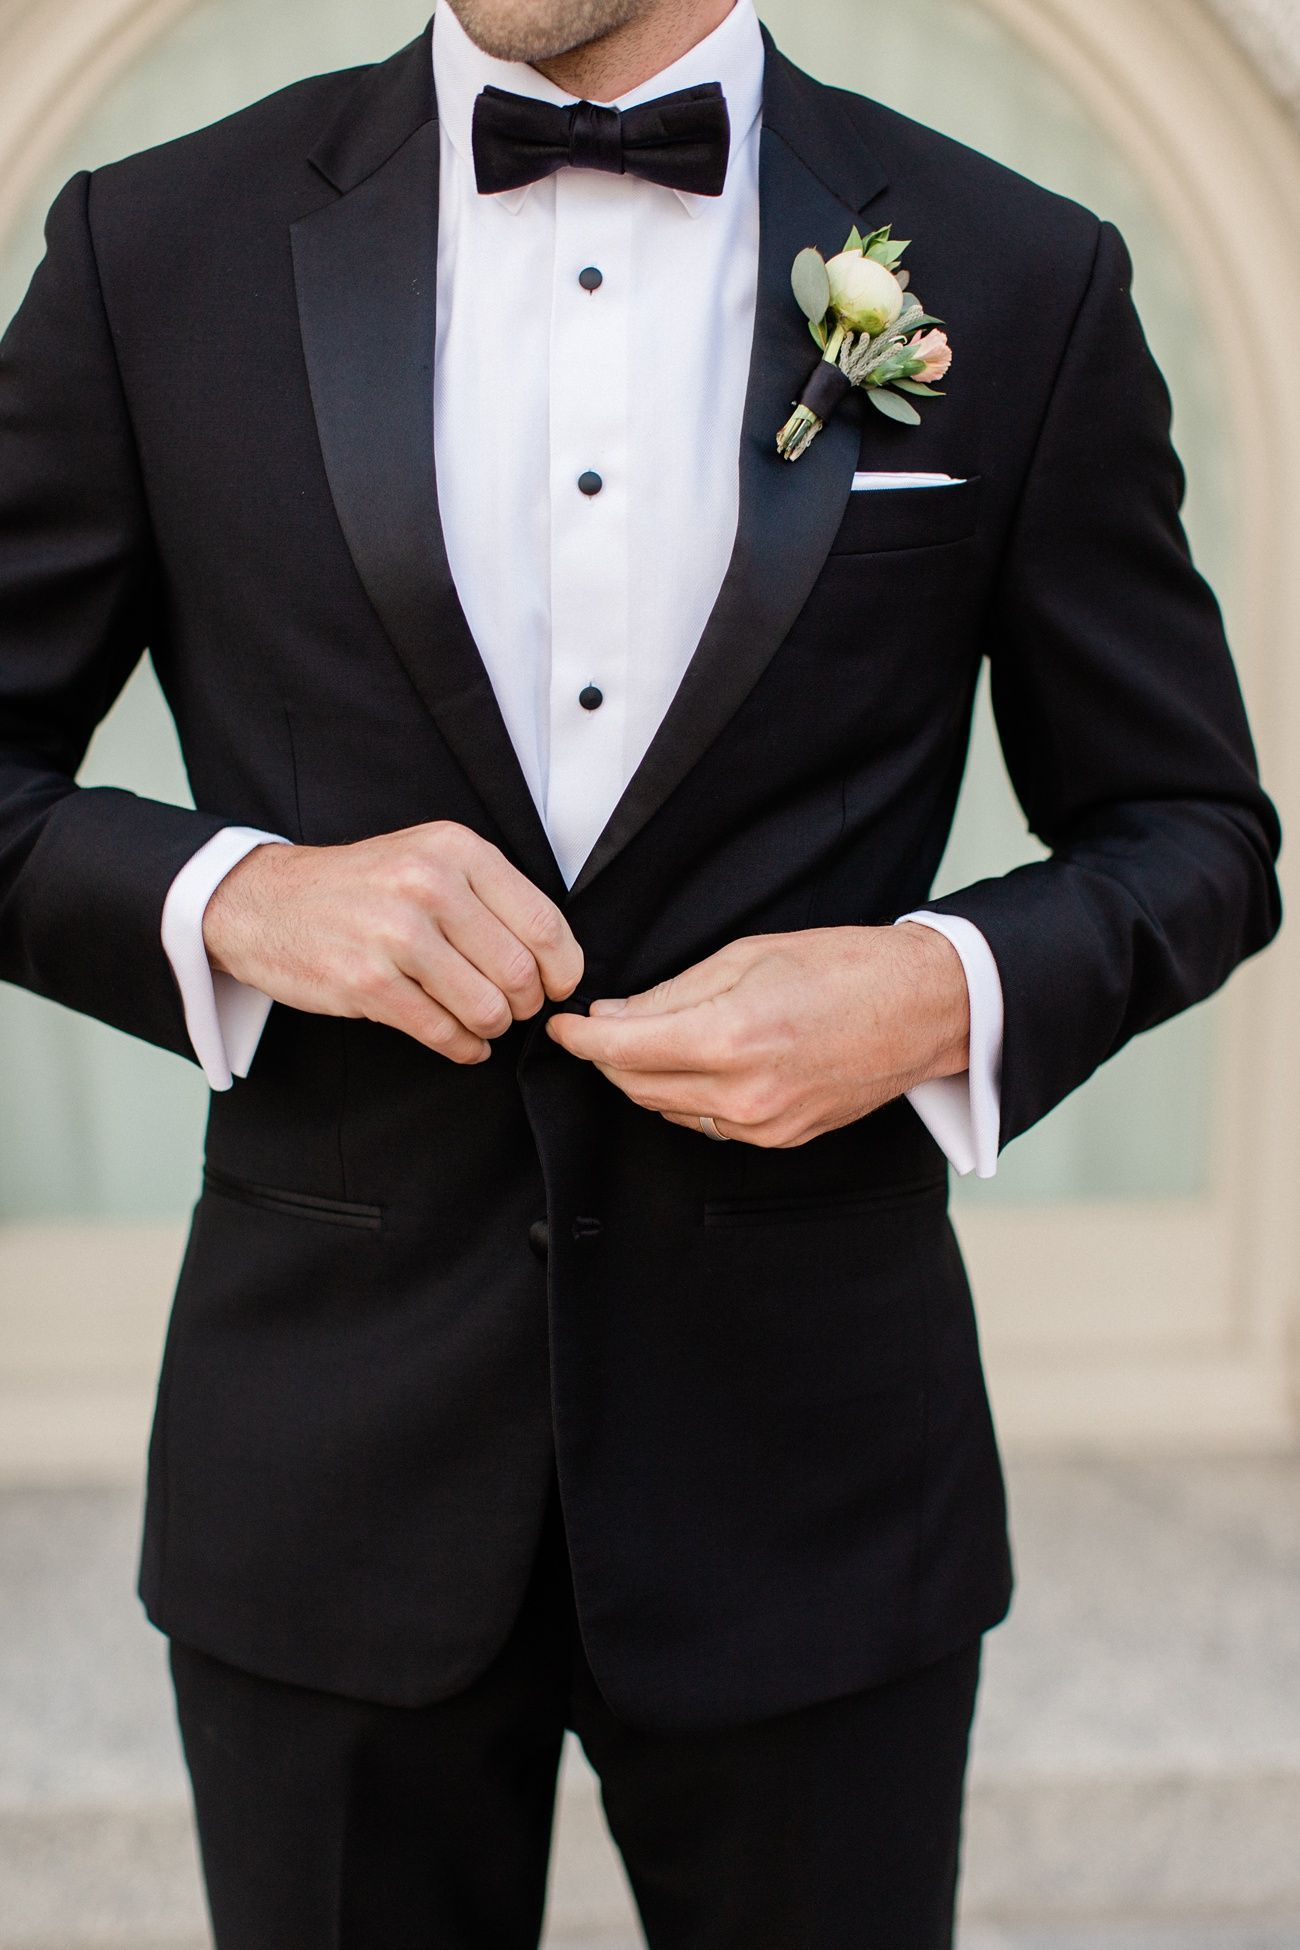 How Far In Advance To Get Tux For Wedding